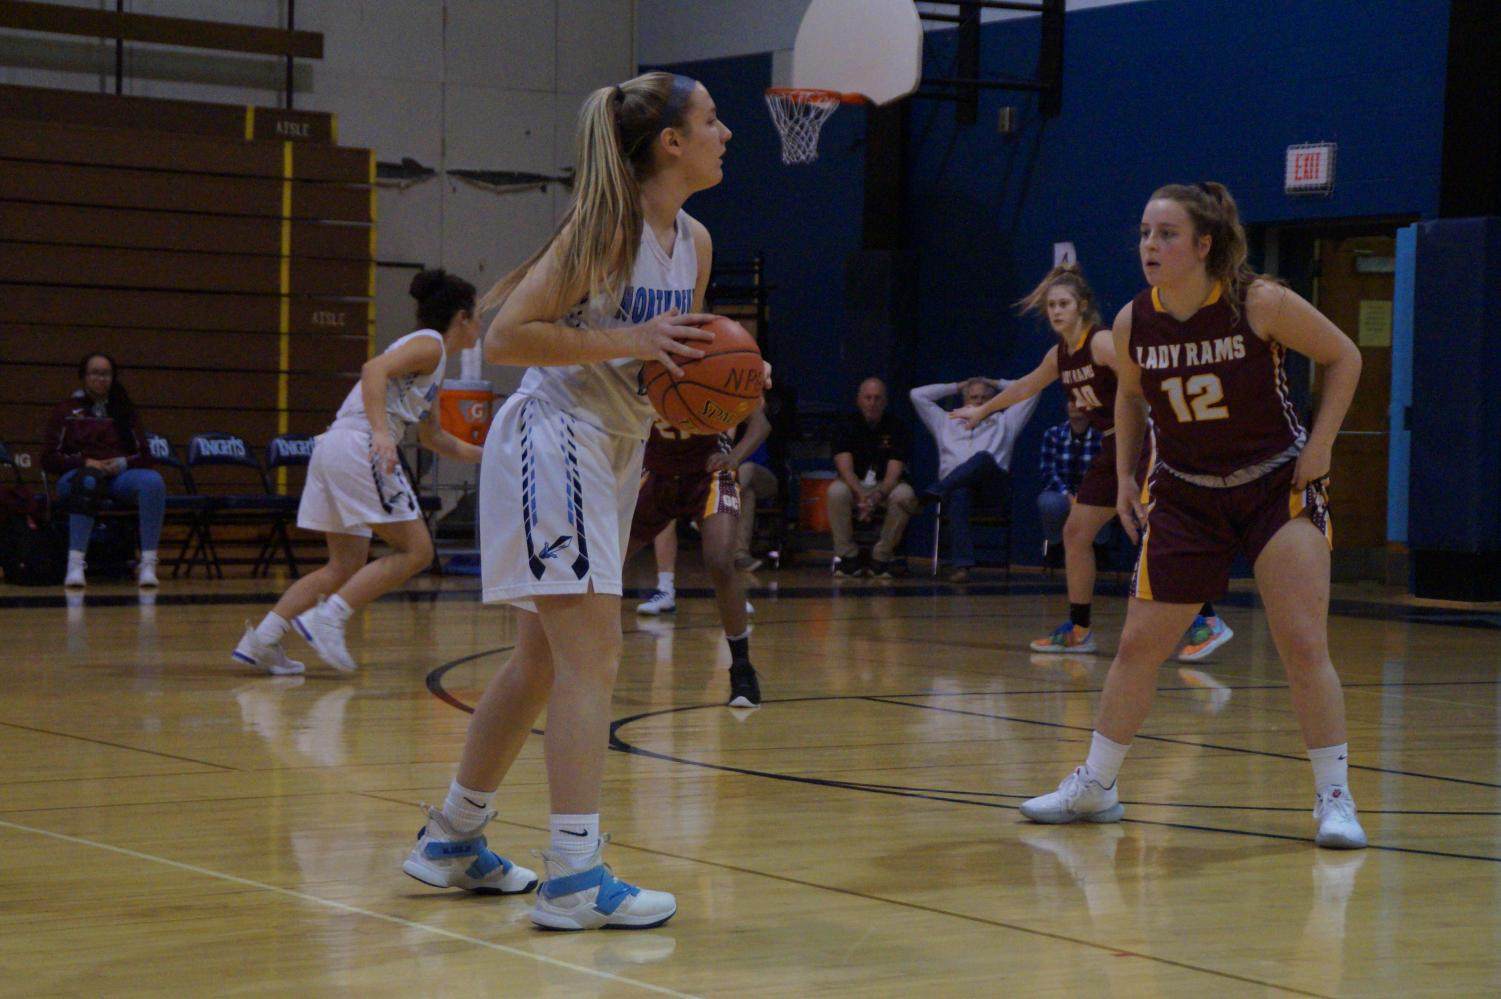 Point guard, Alli Lindsay, looking to pass the ball for the Knights